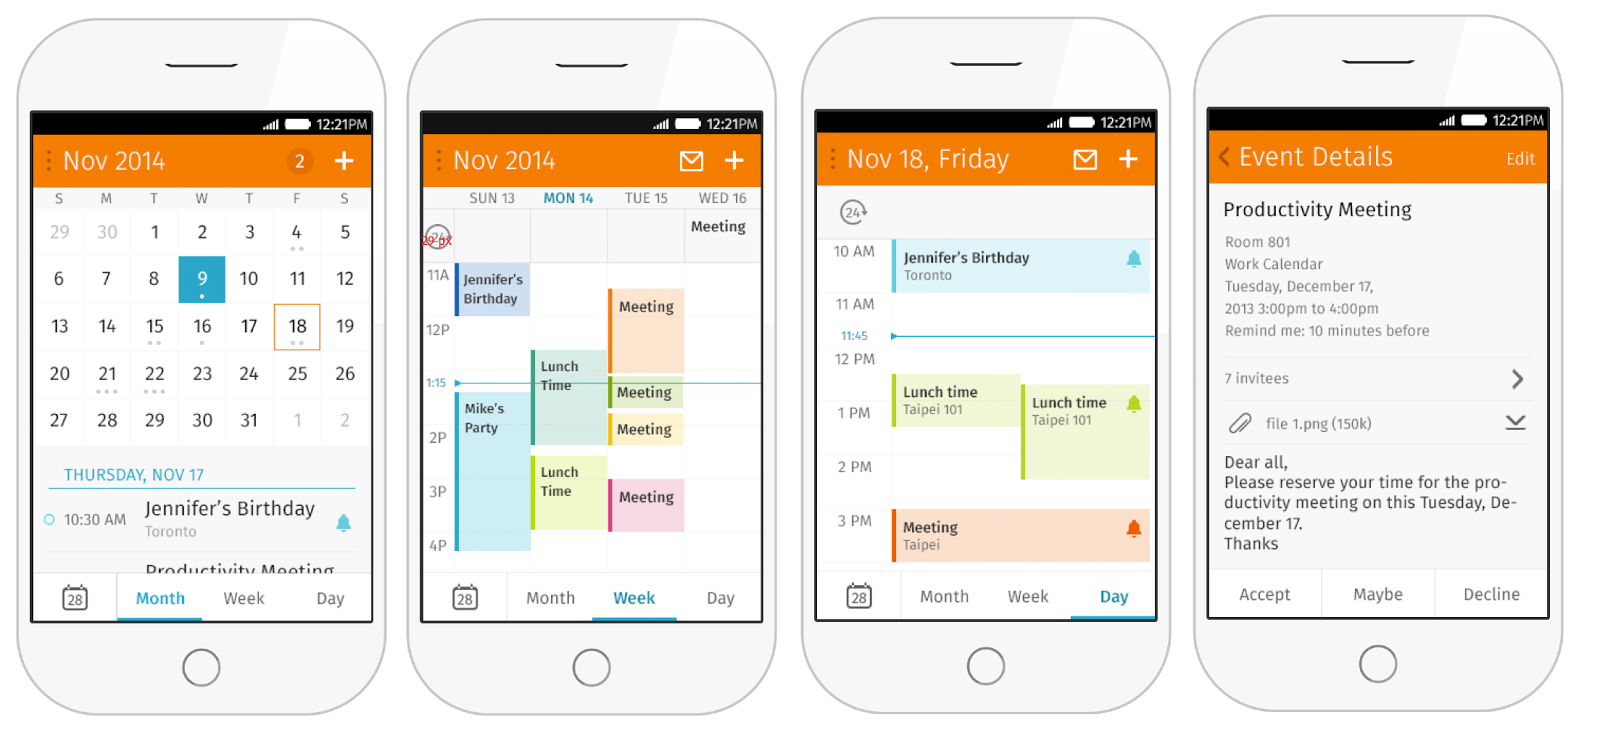 firefoxos - E-mail client, and Calendar